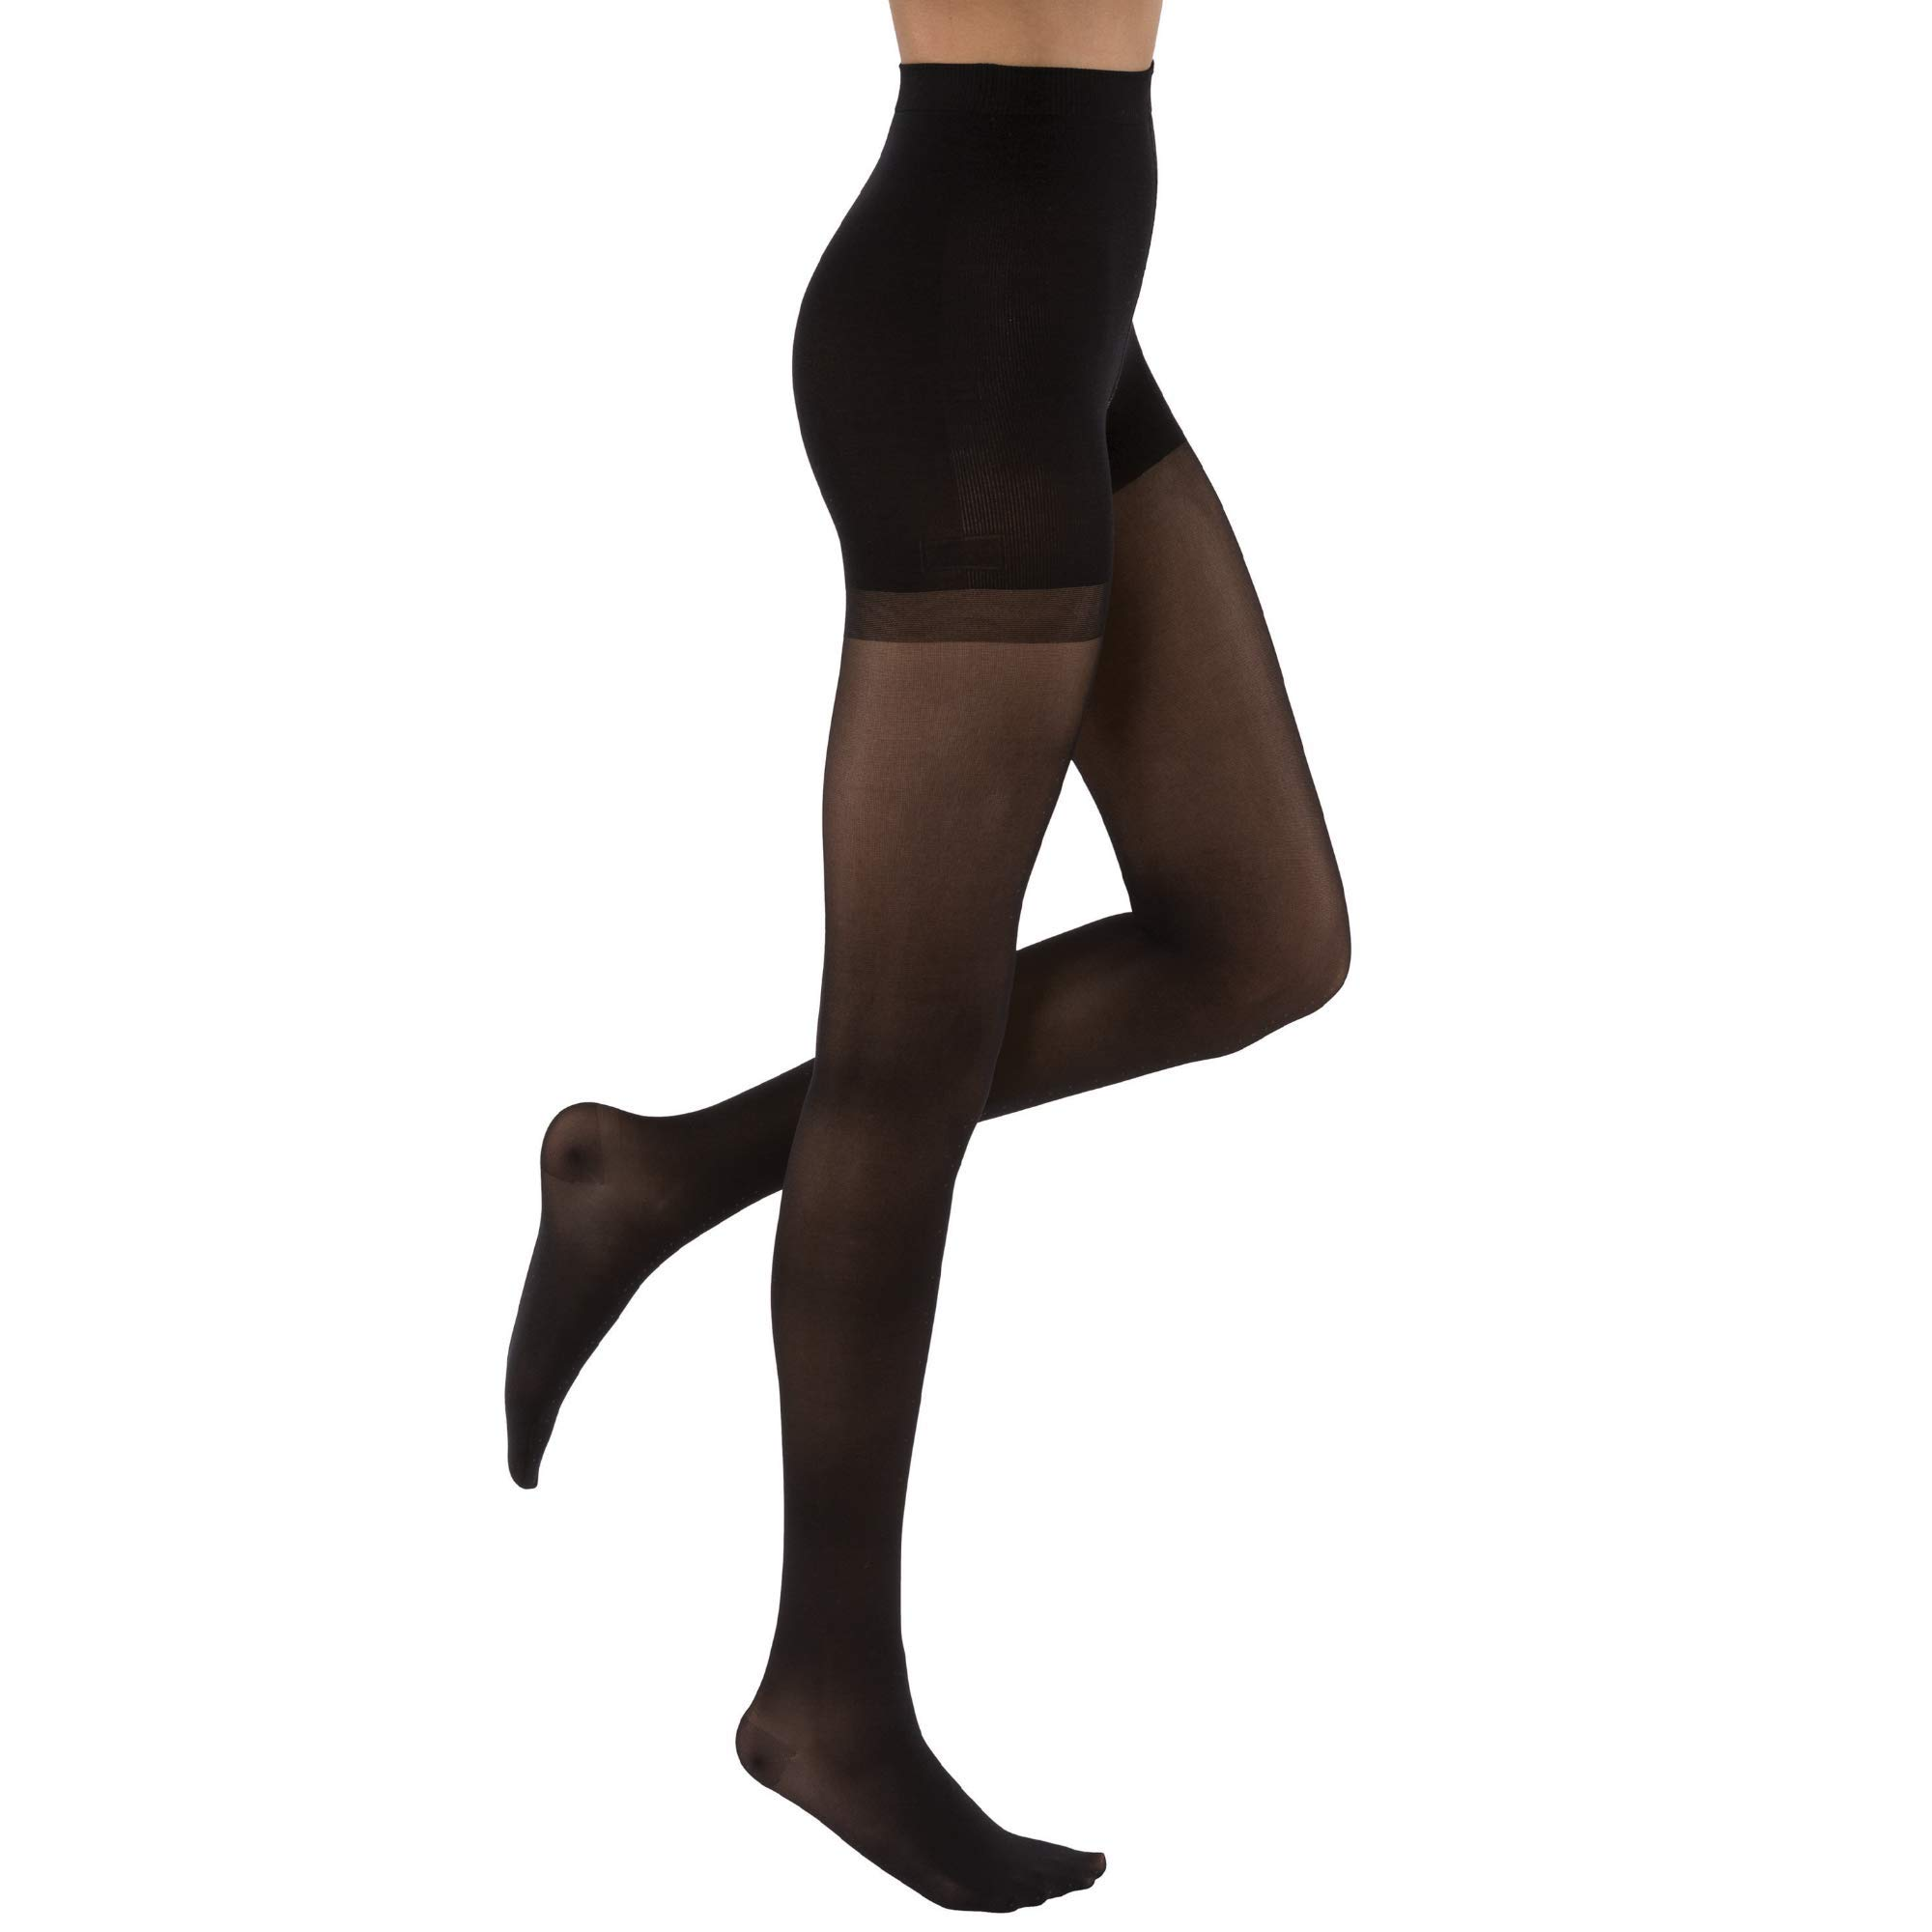 JOBST UltraSheer Compression Stockings Pantyhose